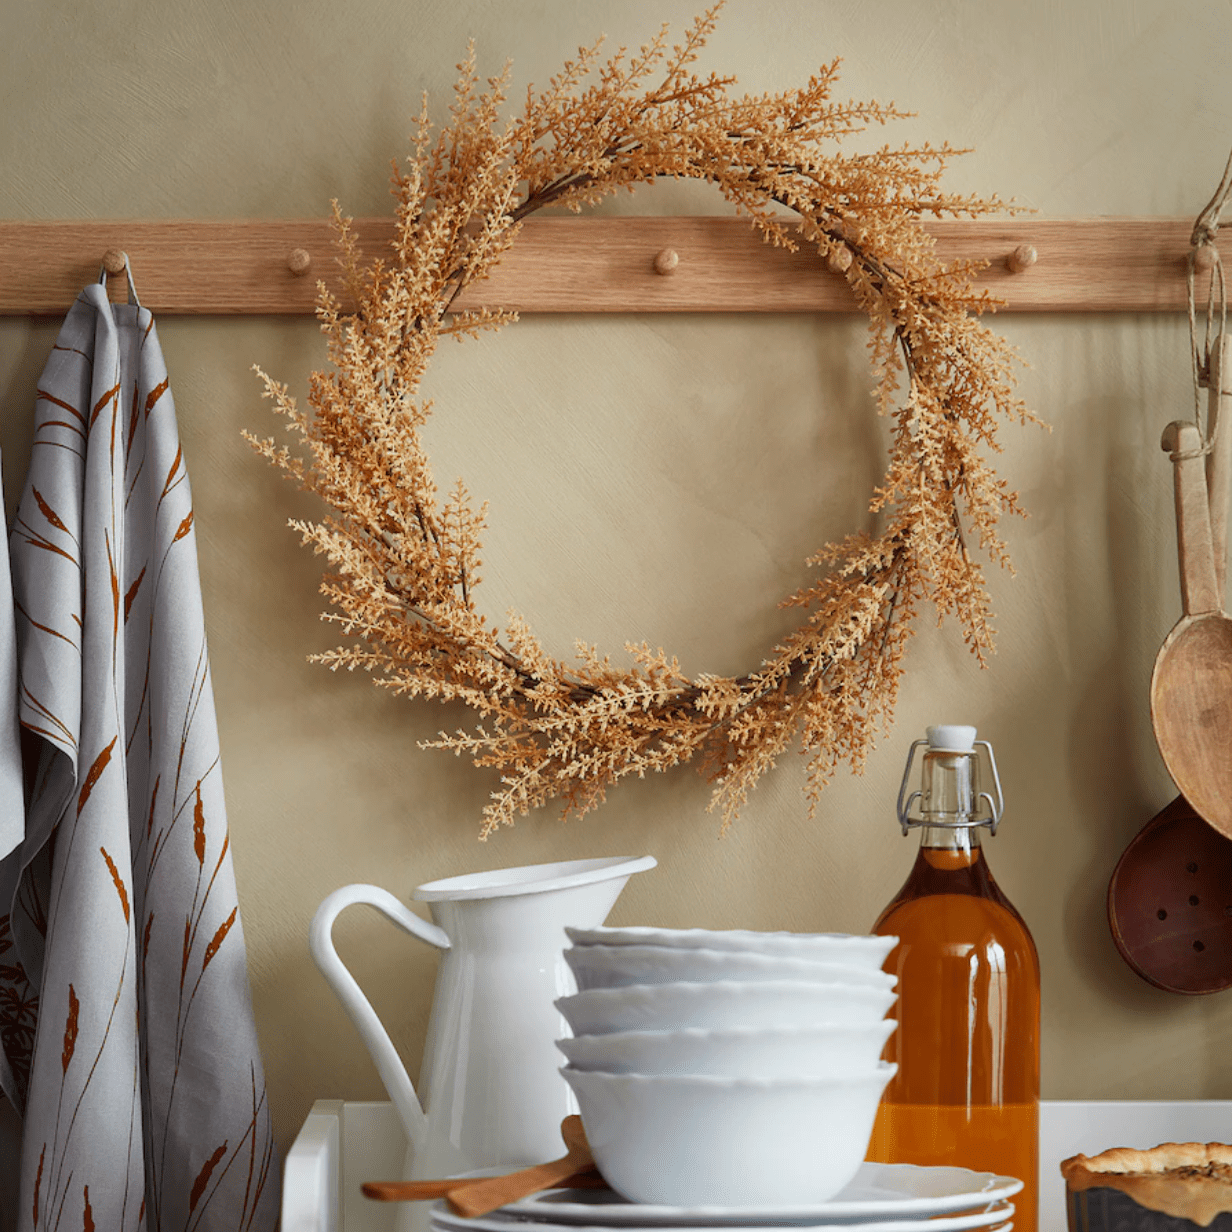 A neutral fall wreath displayed in a kitchen